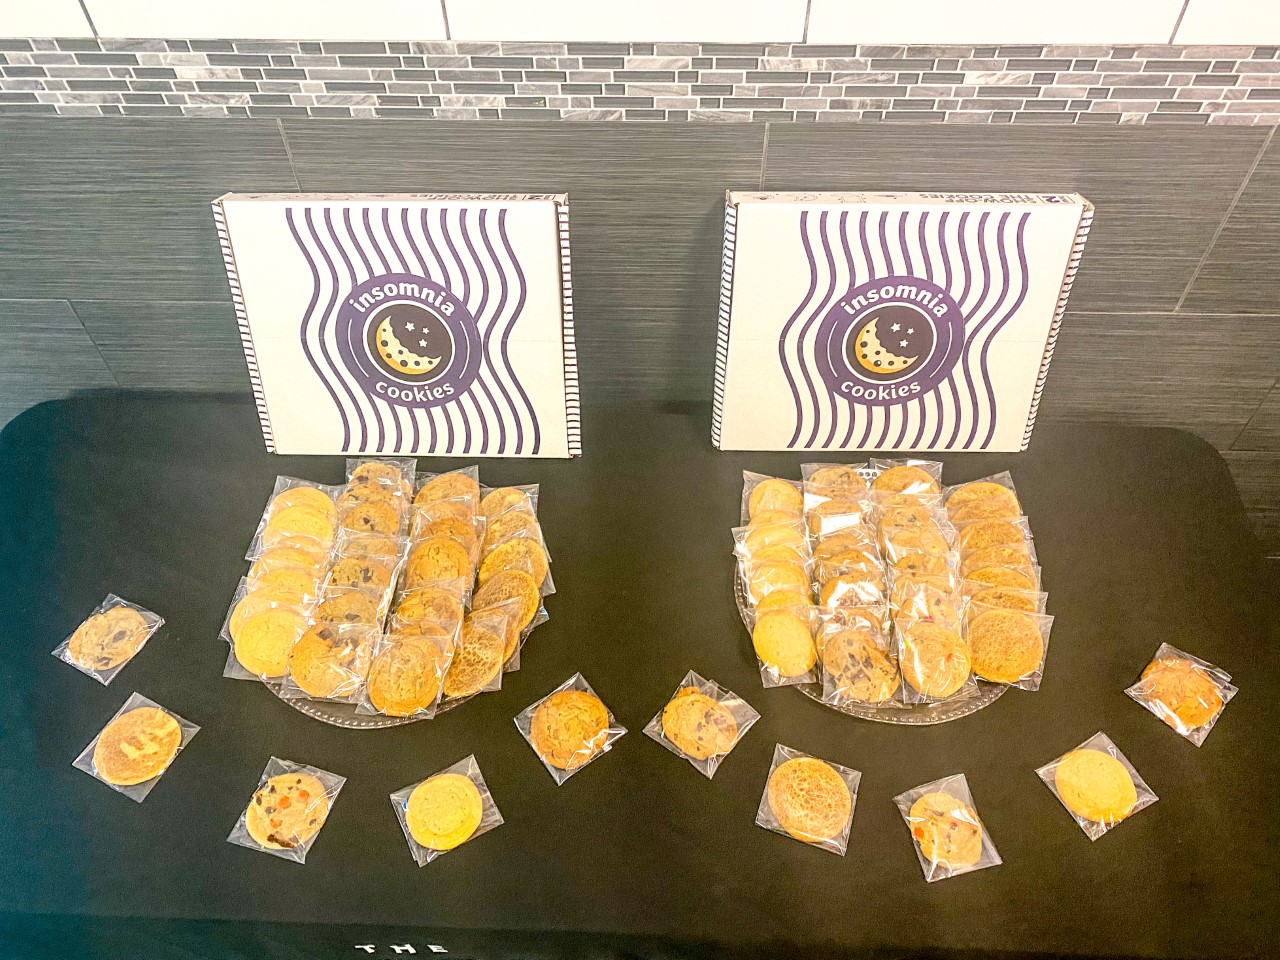 Insomnia Cookie Craze At The Legacy at State College